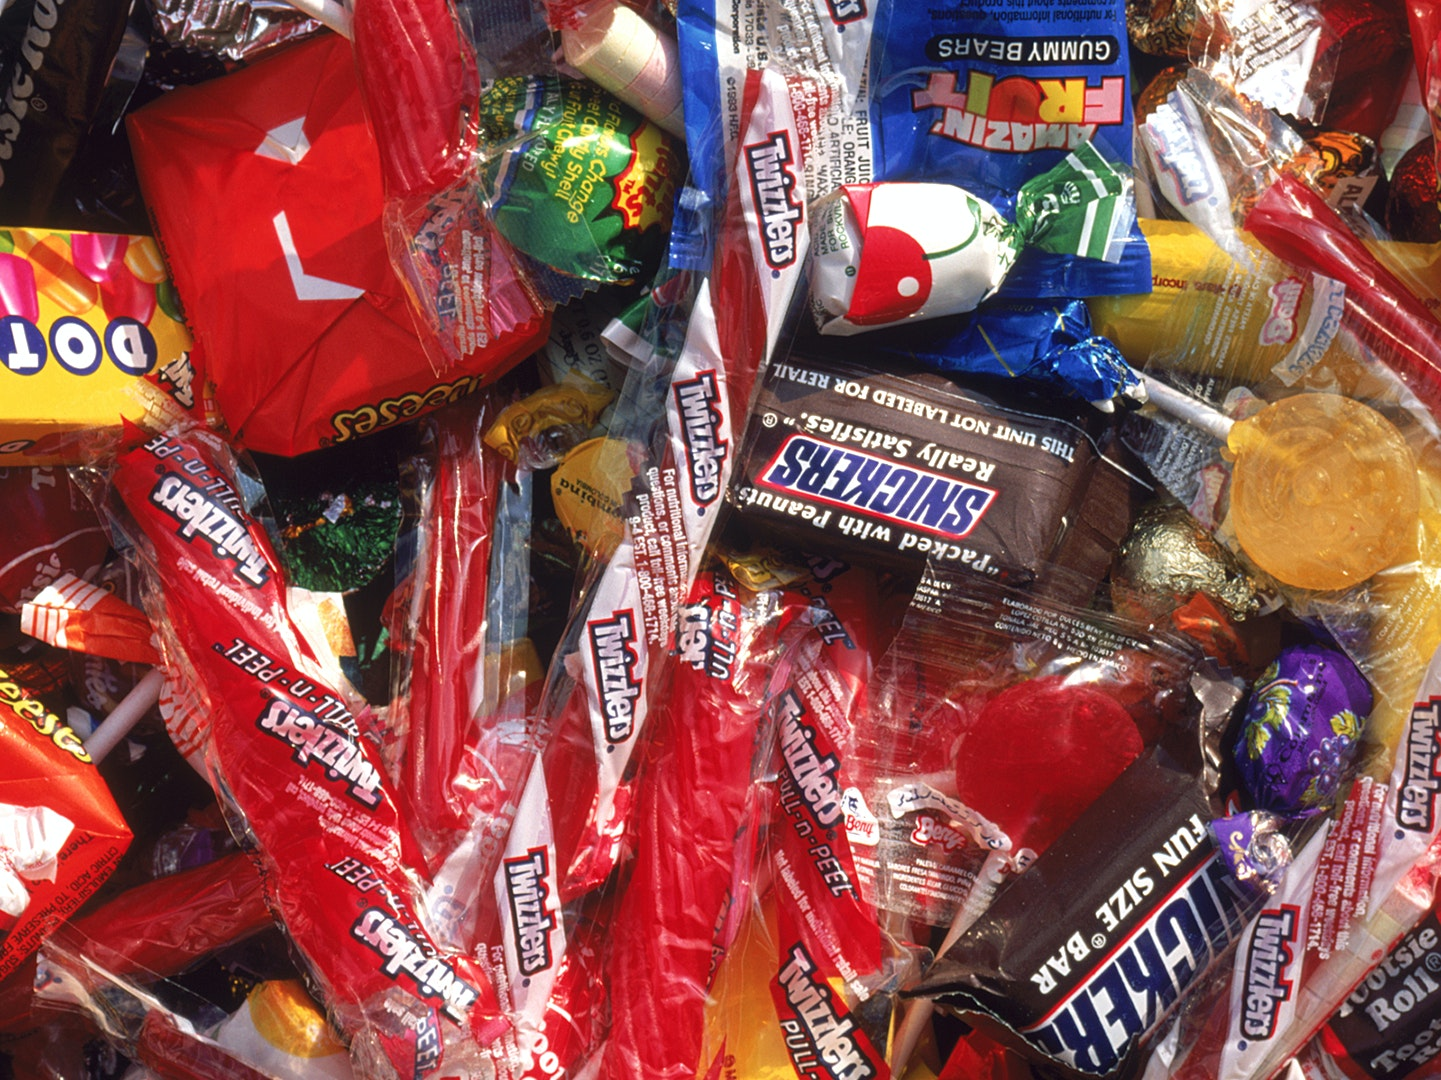 why poison halloween candy fears persist | inverse